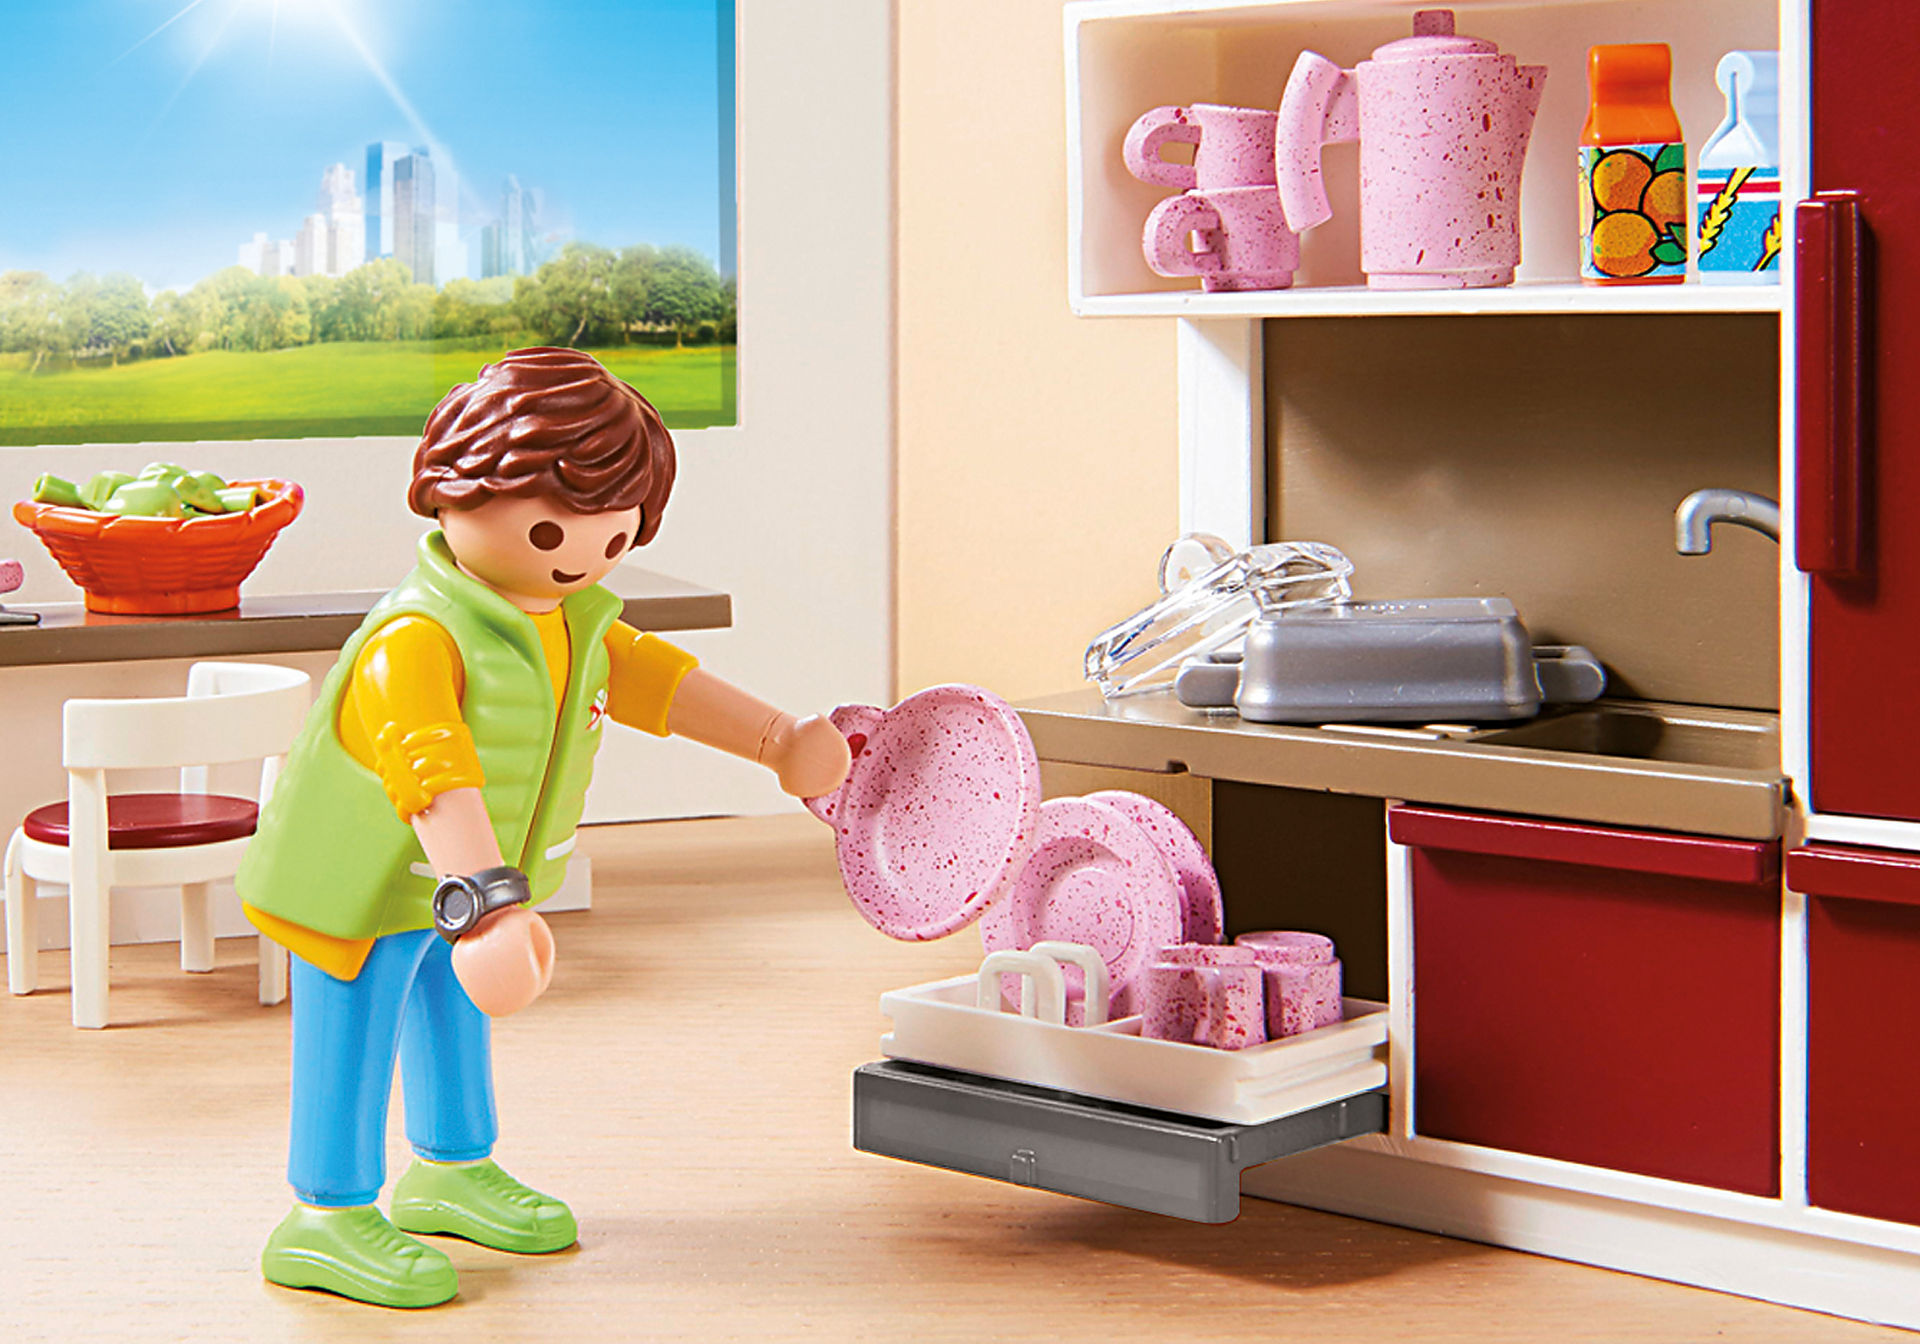 http://media.playmobil.com/i/playmobil/9269_product_extra2/Große Familienküche